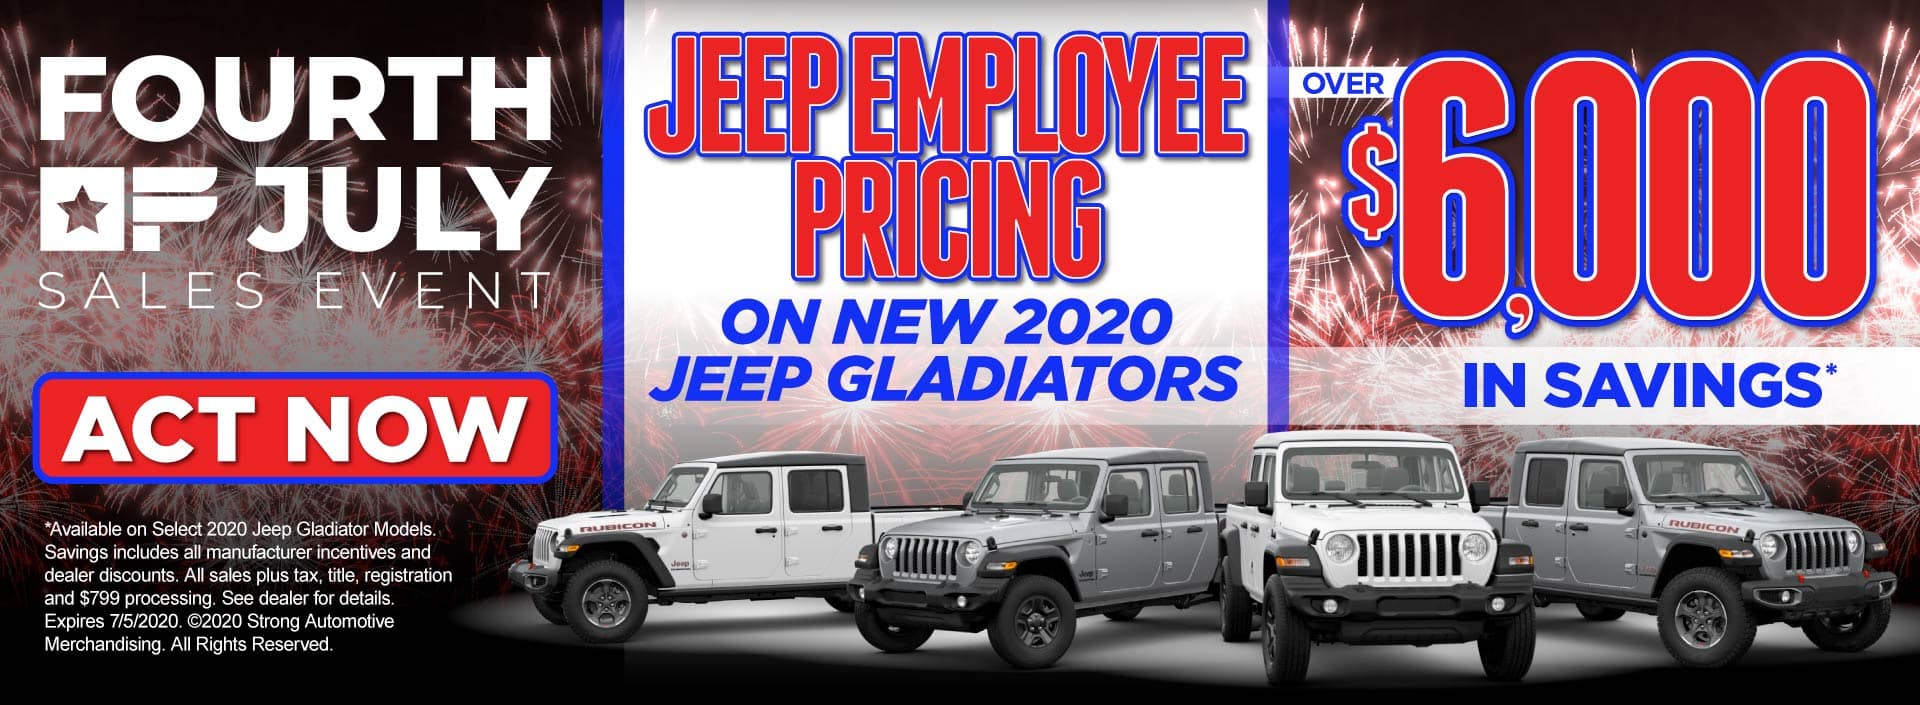 Jeep Employee Pricing on New 2020 Jeep Gladiators – Over $6,000 in savings* – View Inventory